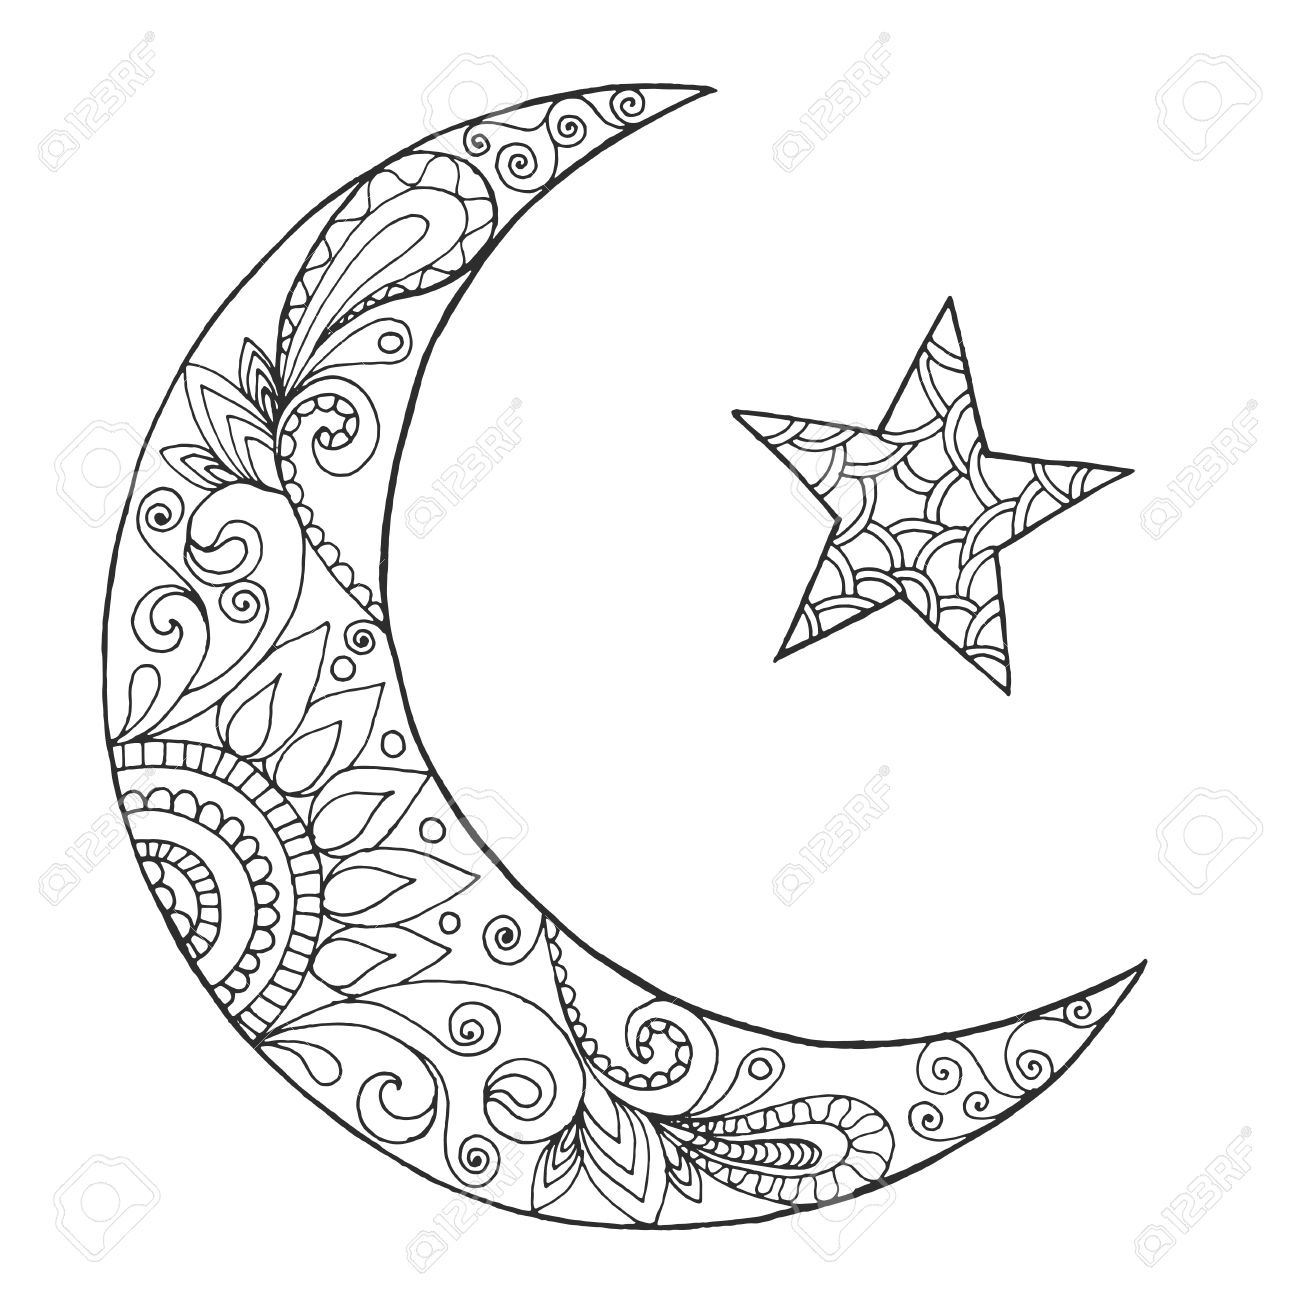 Half And Half Moon Half Sun Coloring Pages Of Star